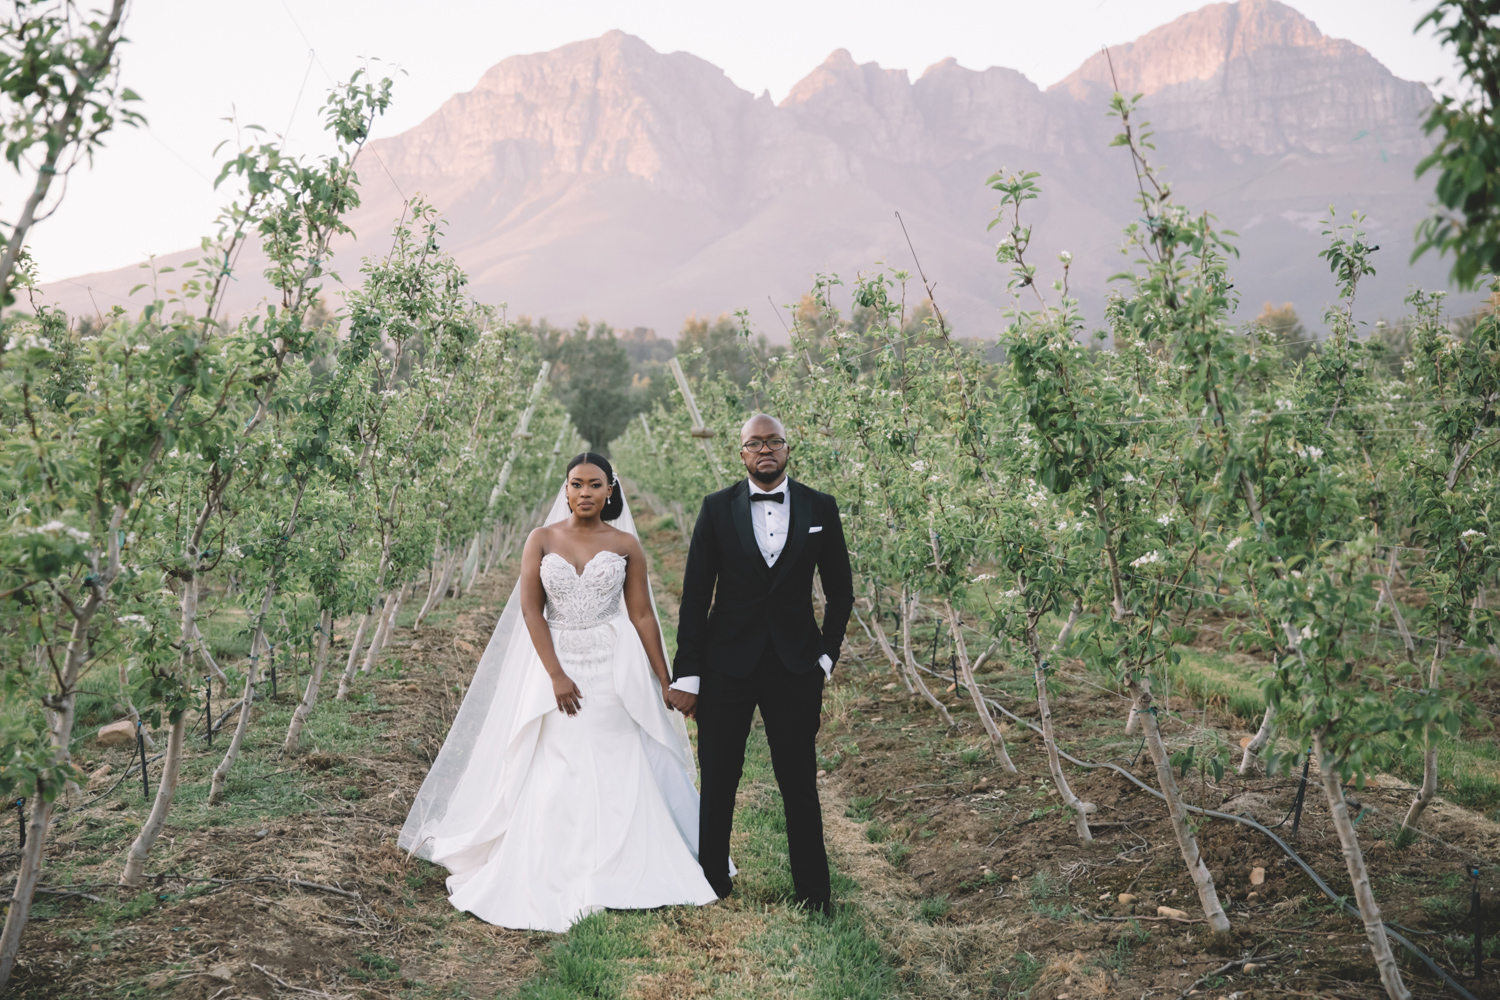 a bride and groom holding hands  in-between the vineyards on Lourensford wine estate.